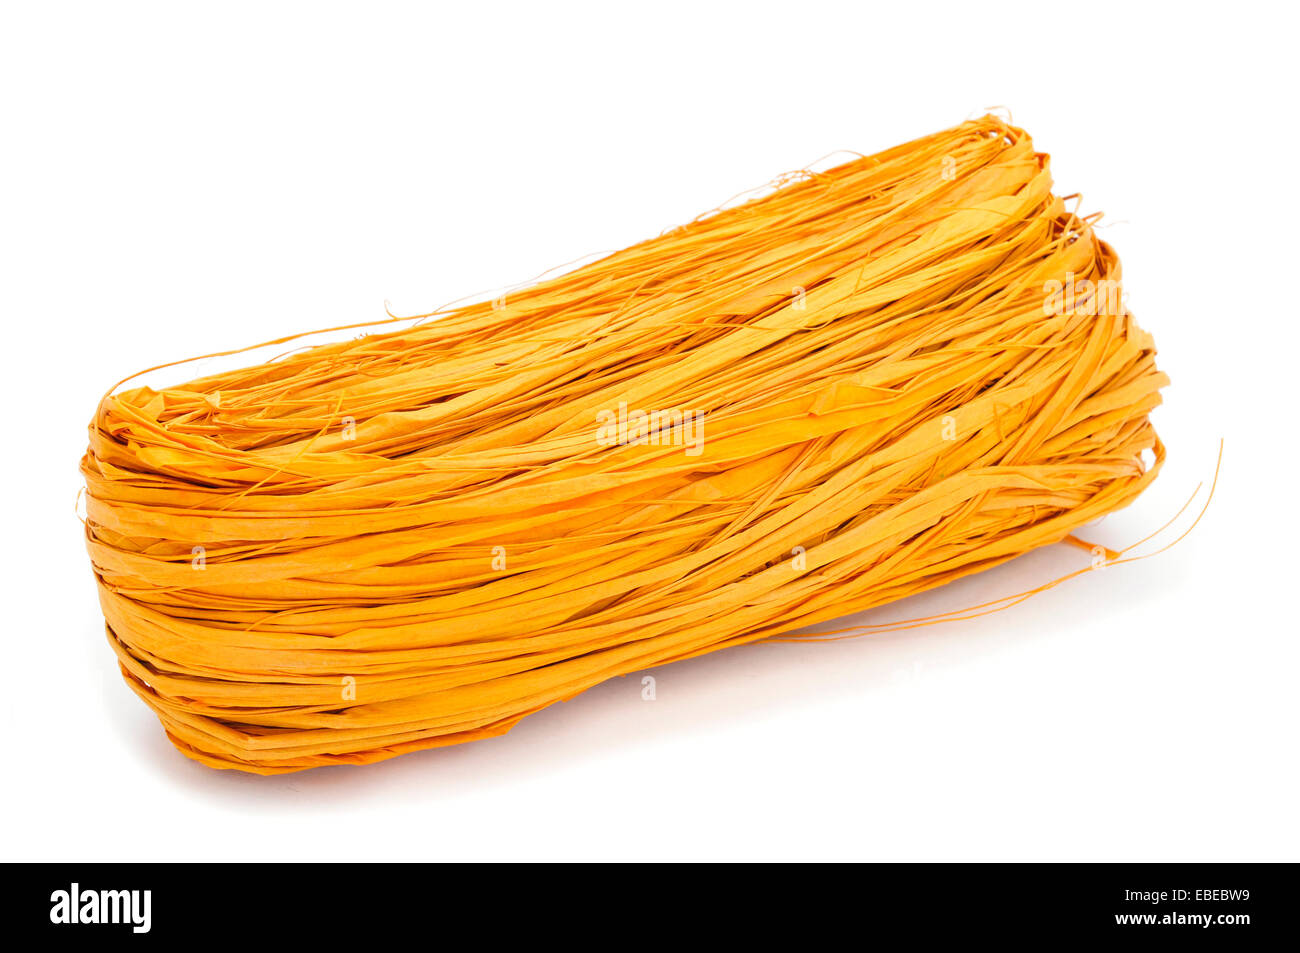 a skein of natural raffia dyed yellow on a white background - Stock Image